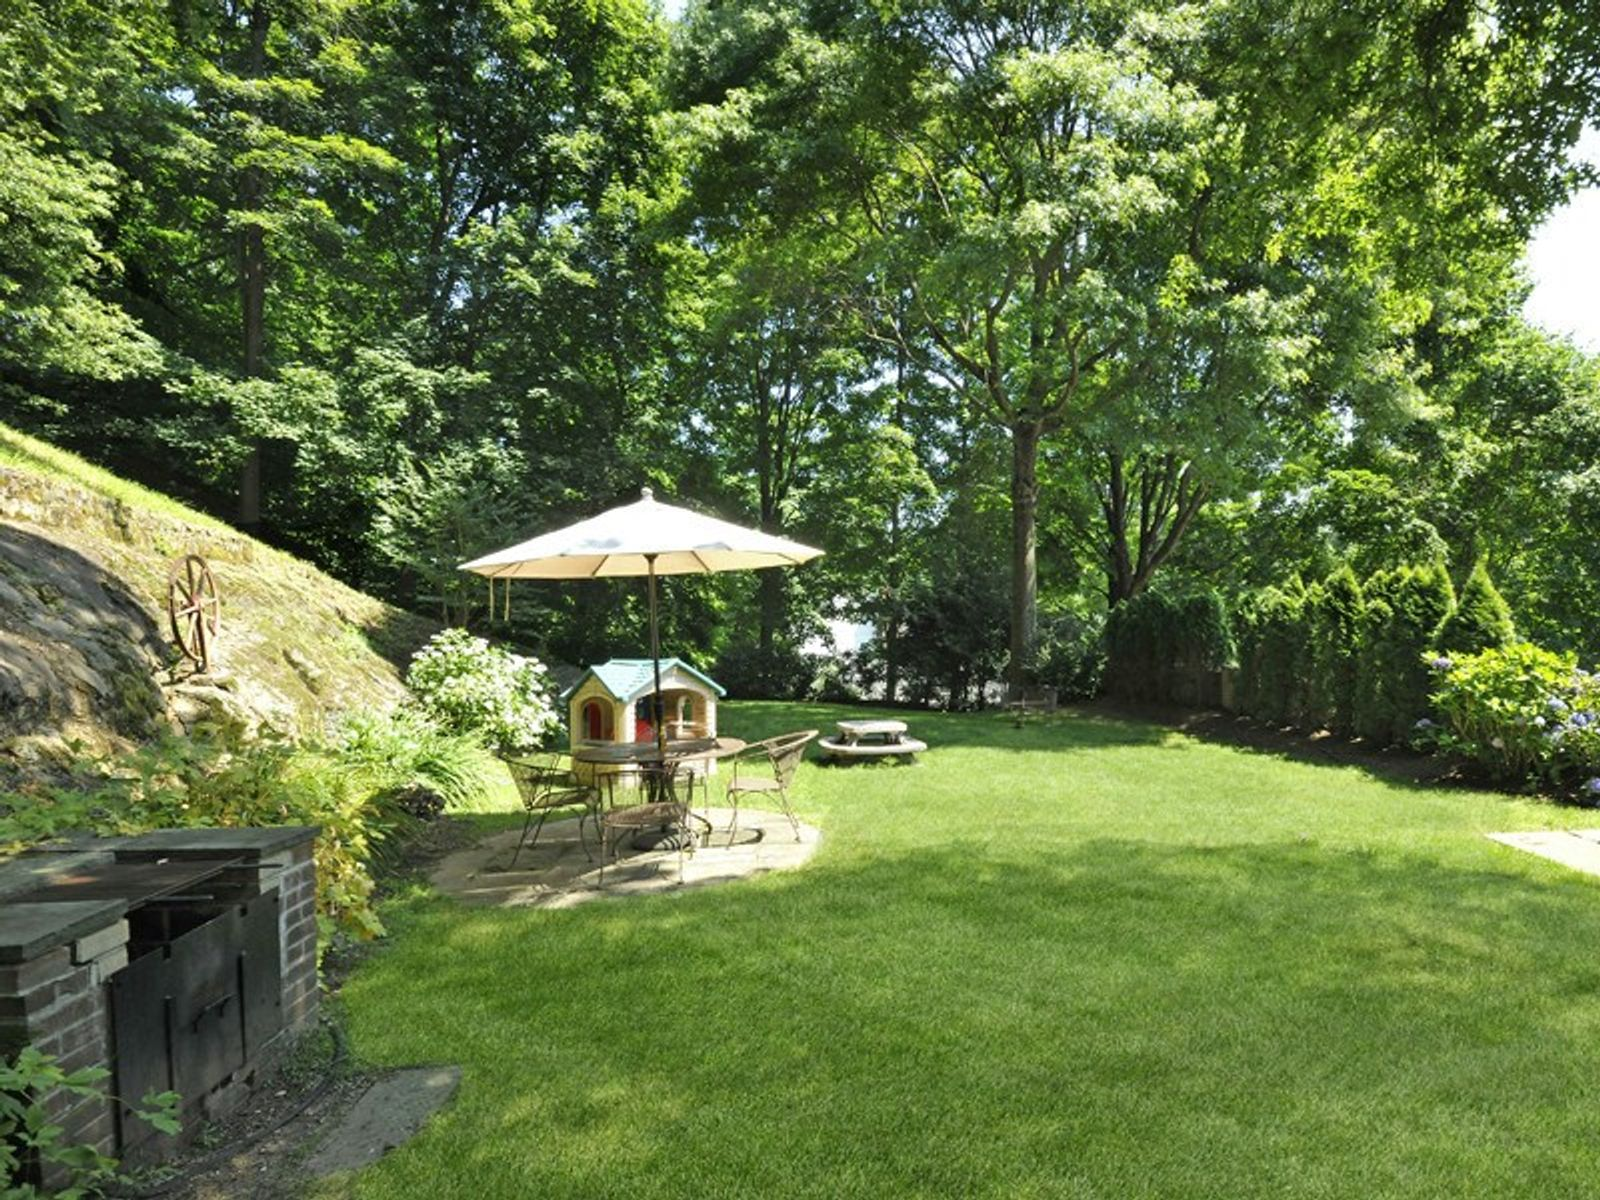 Backyard Features Mature Trees and Buit-in BBQ